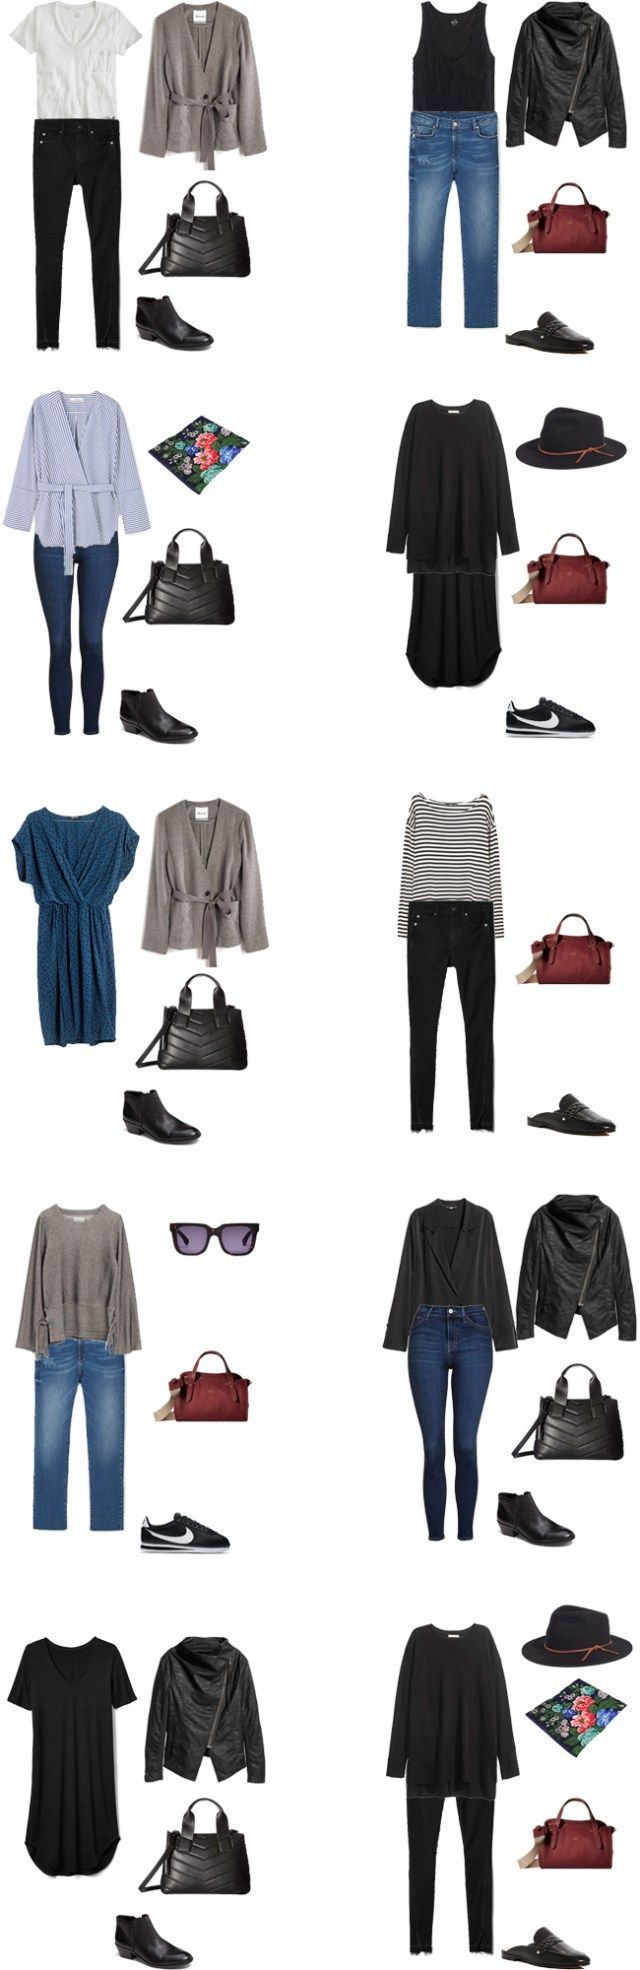 Packing List: 3 weeks in Venice, Italy, in Spring 2017- Outfit Options 2. livelovesara #travelpacking